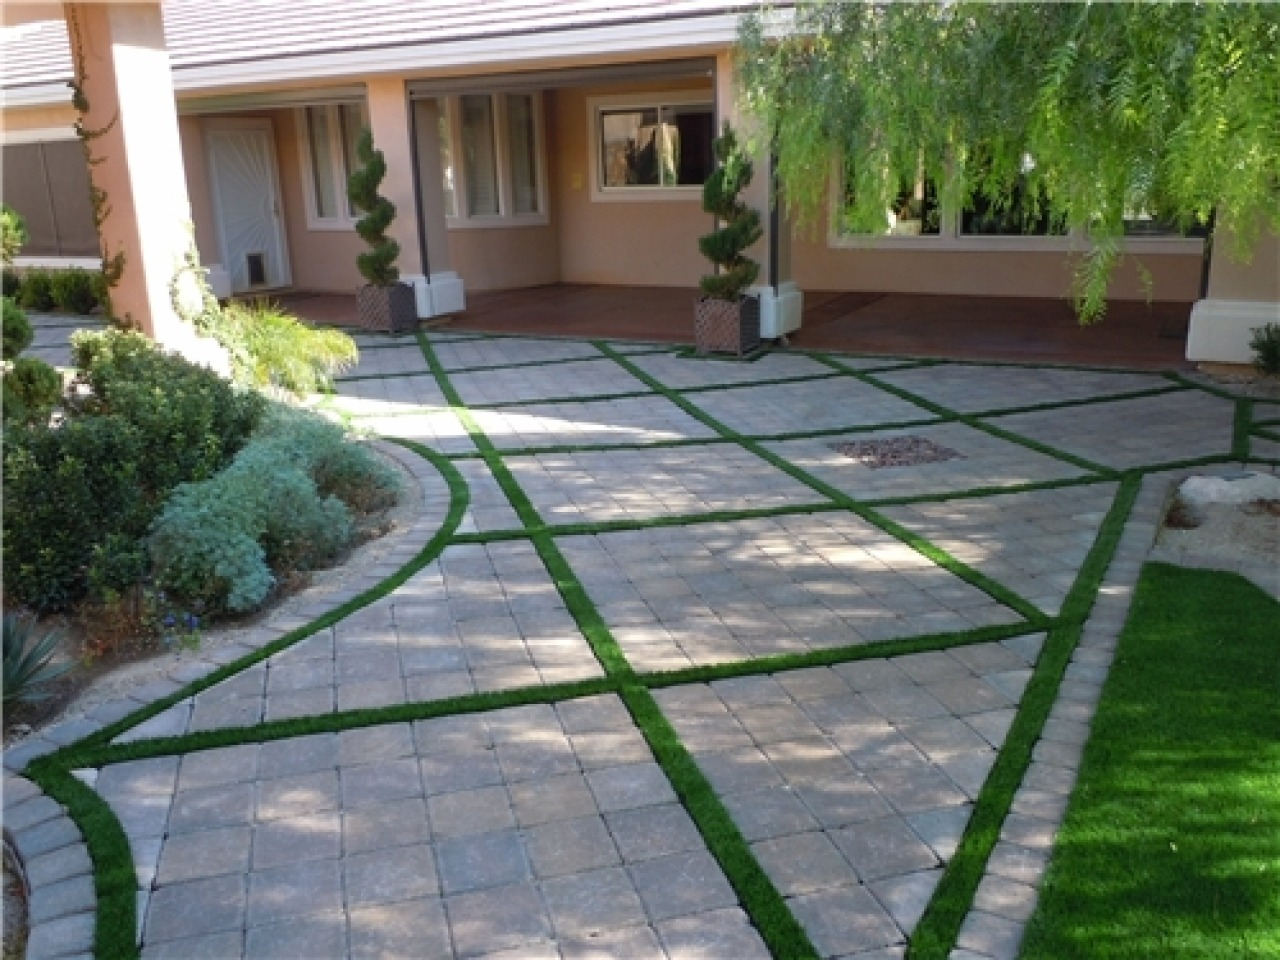 Backyard Patio Paver with Green Combination